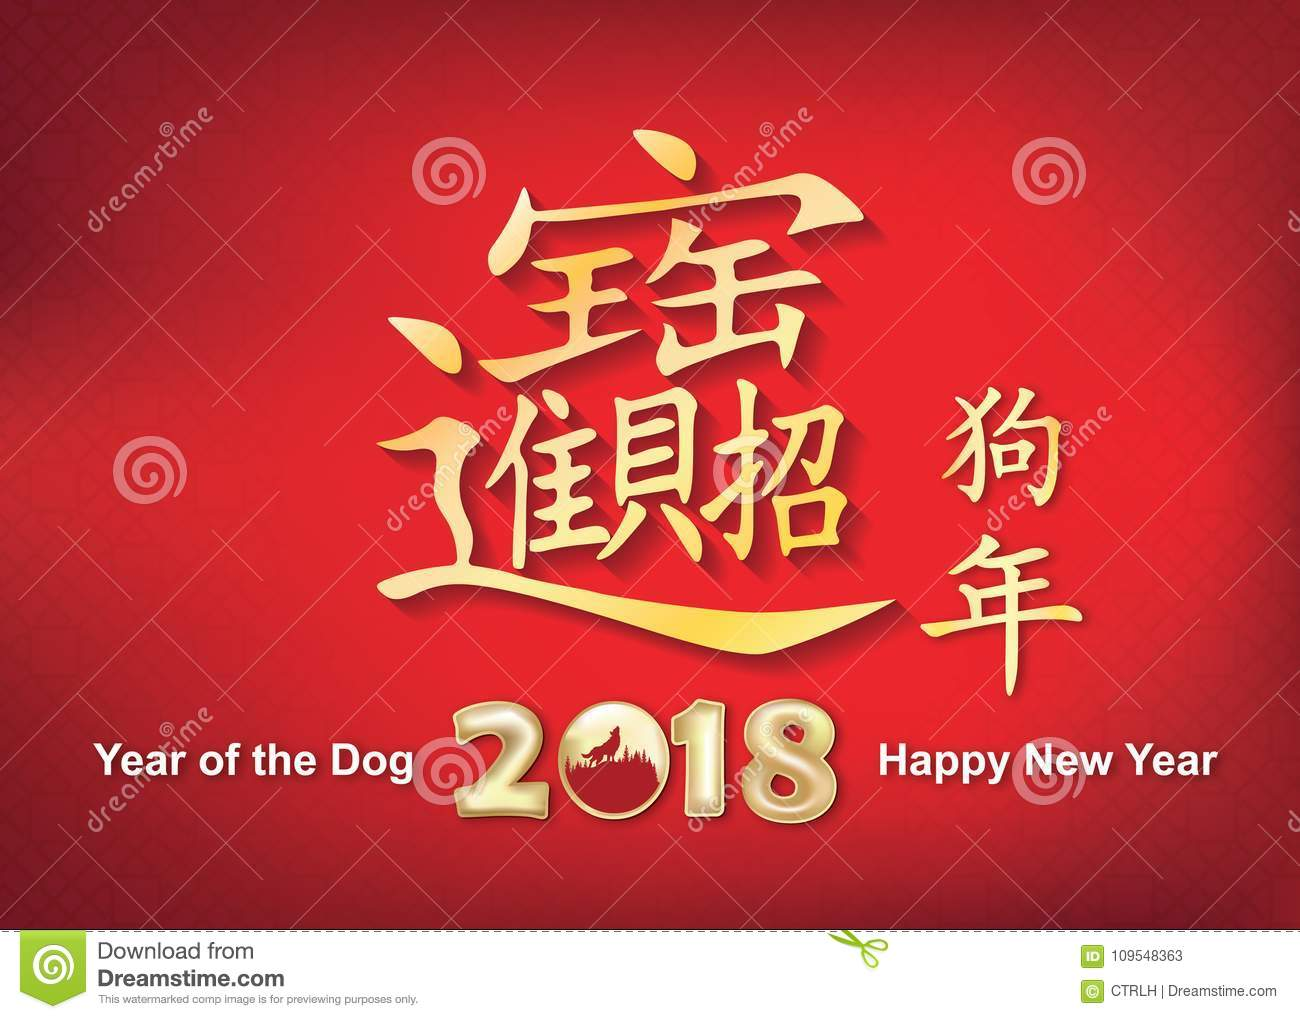 chinese new year of the dog 2018 printable background for greeting cards